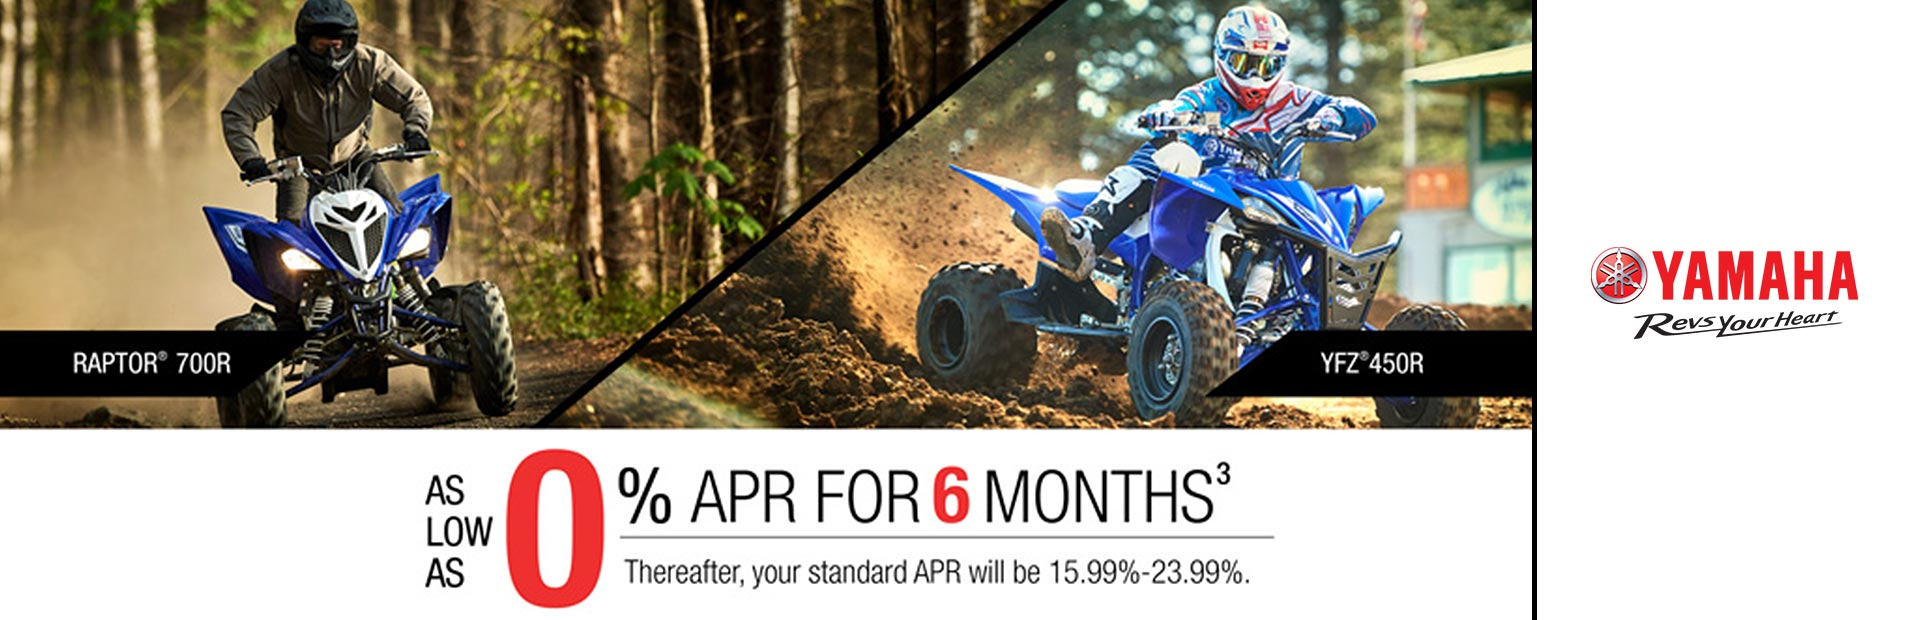 Yamaha: 0% APR For 6 Months